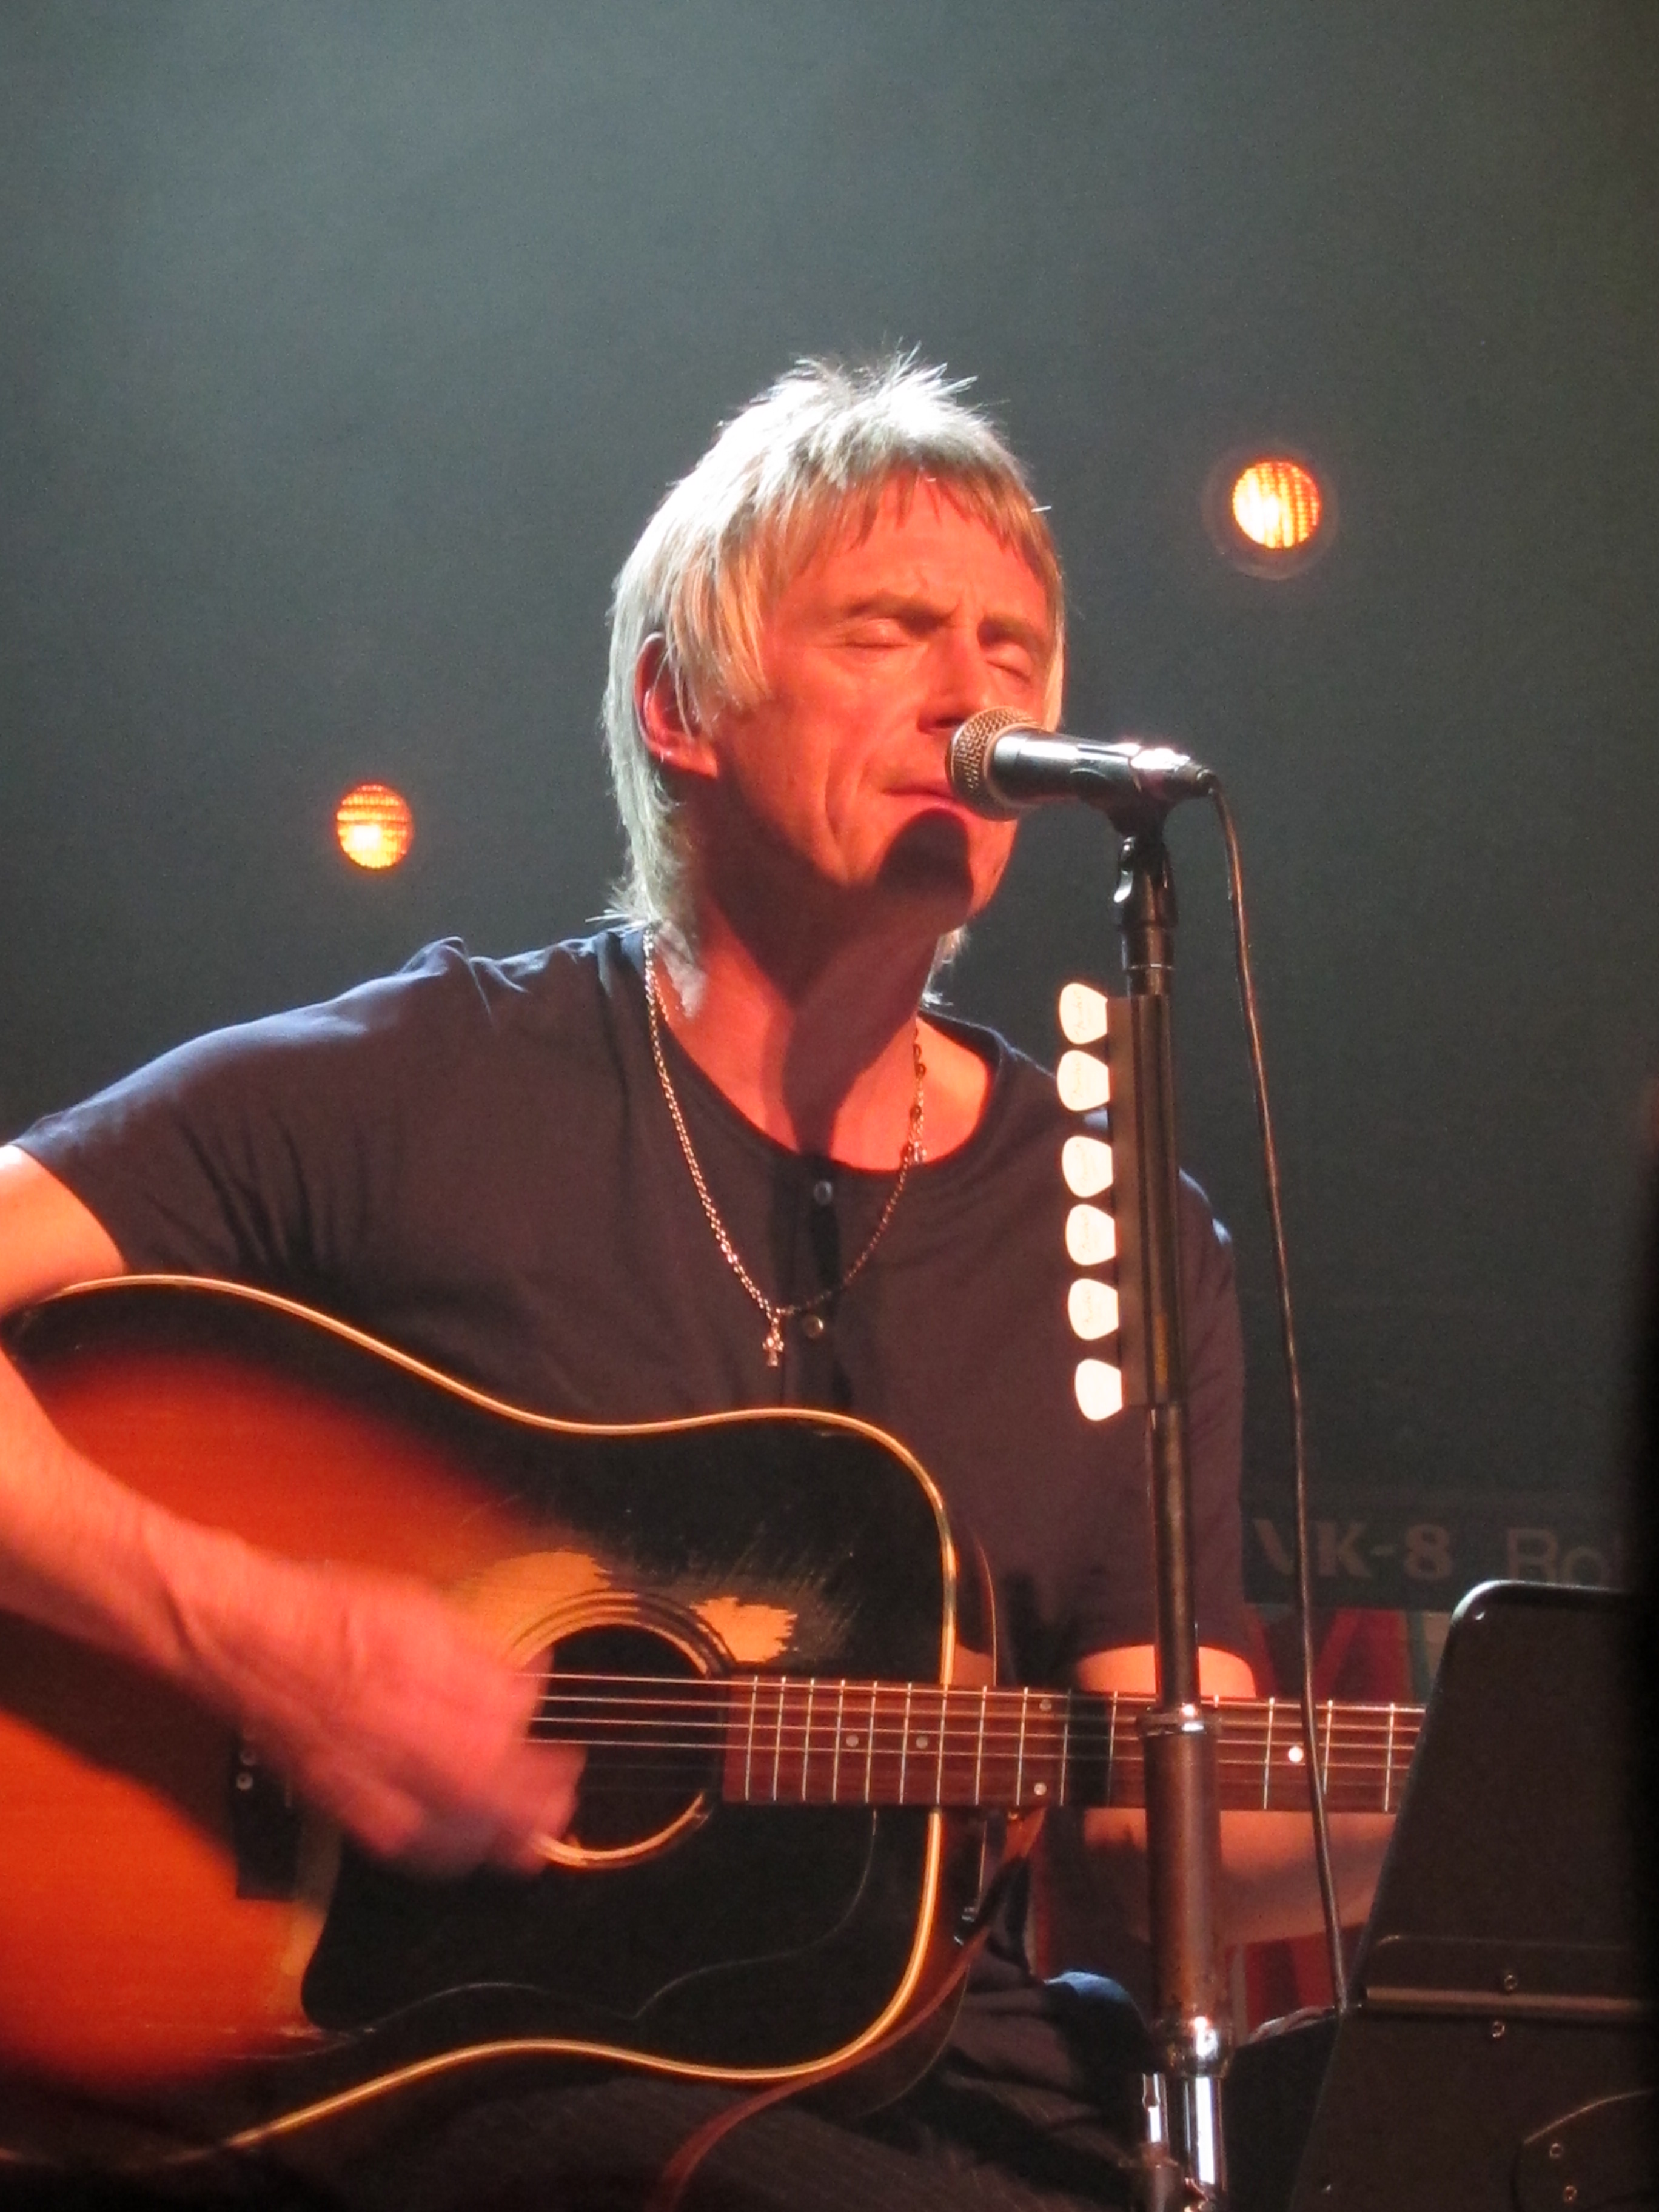 Paul Weller Live At The Camden Roundhouse 2012 Every